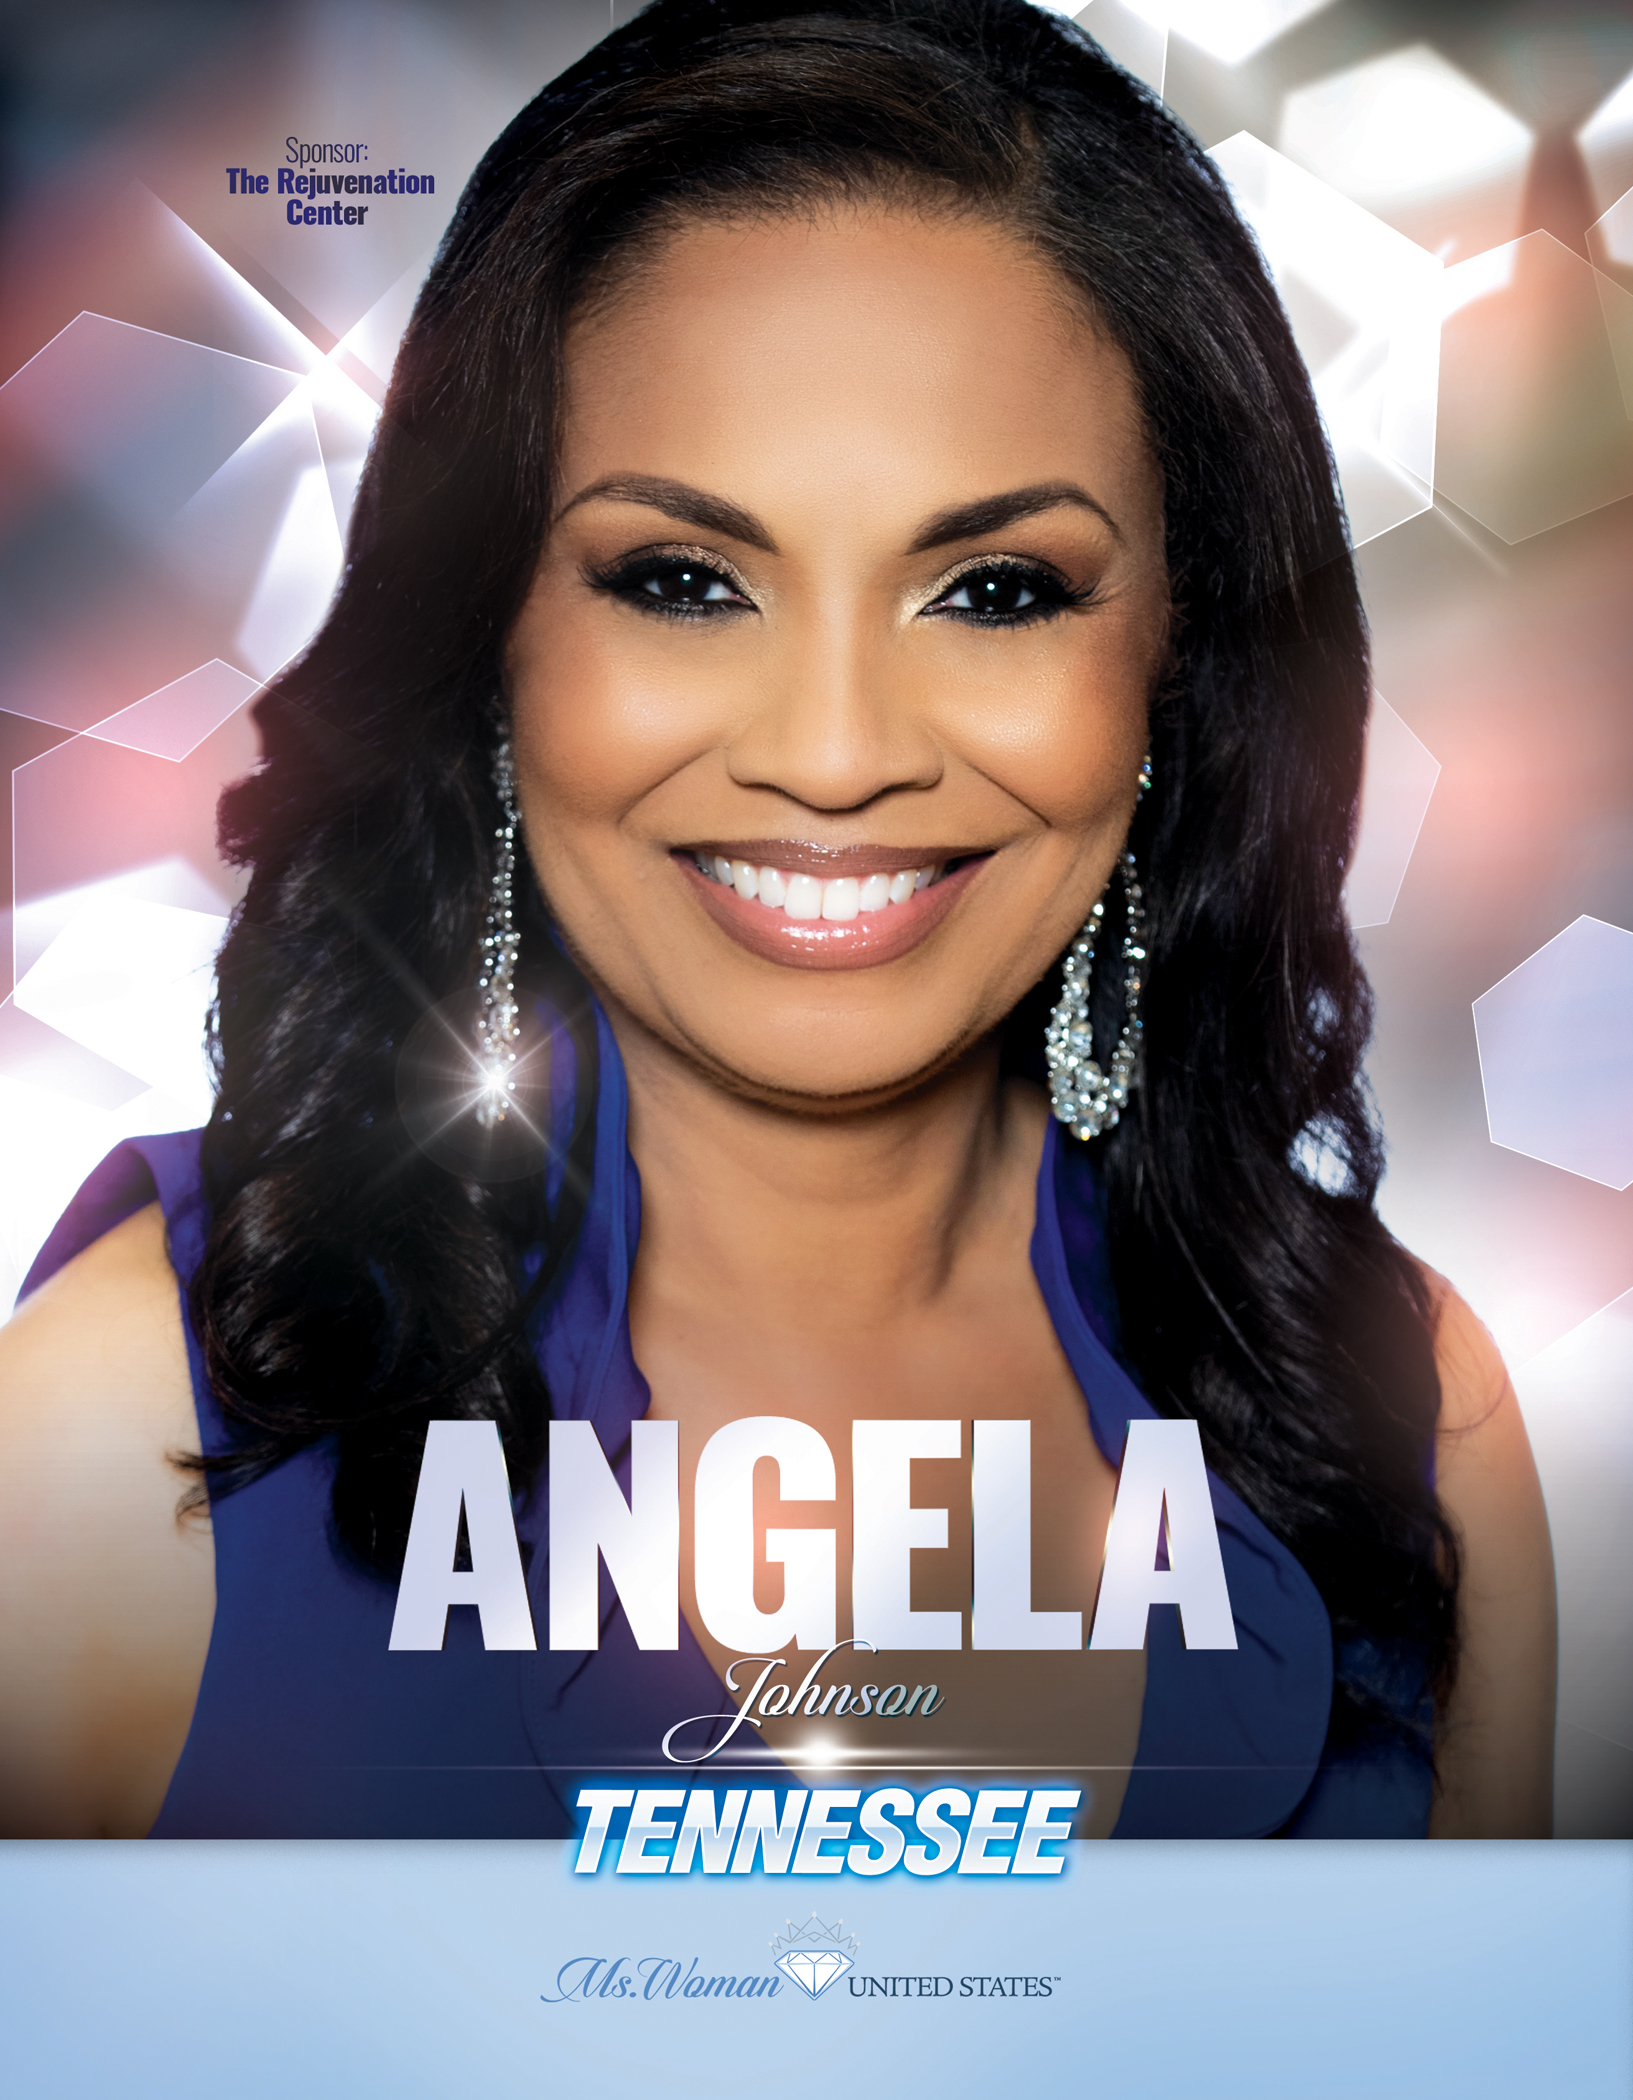 Angela Johnson Ms. Woman Tennessee United States - 2019